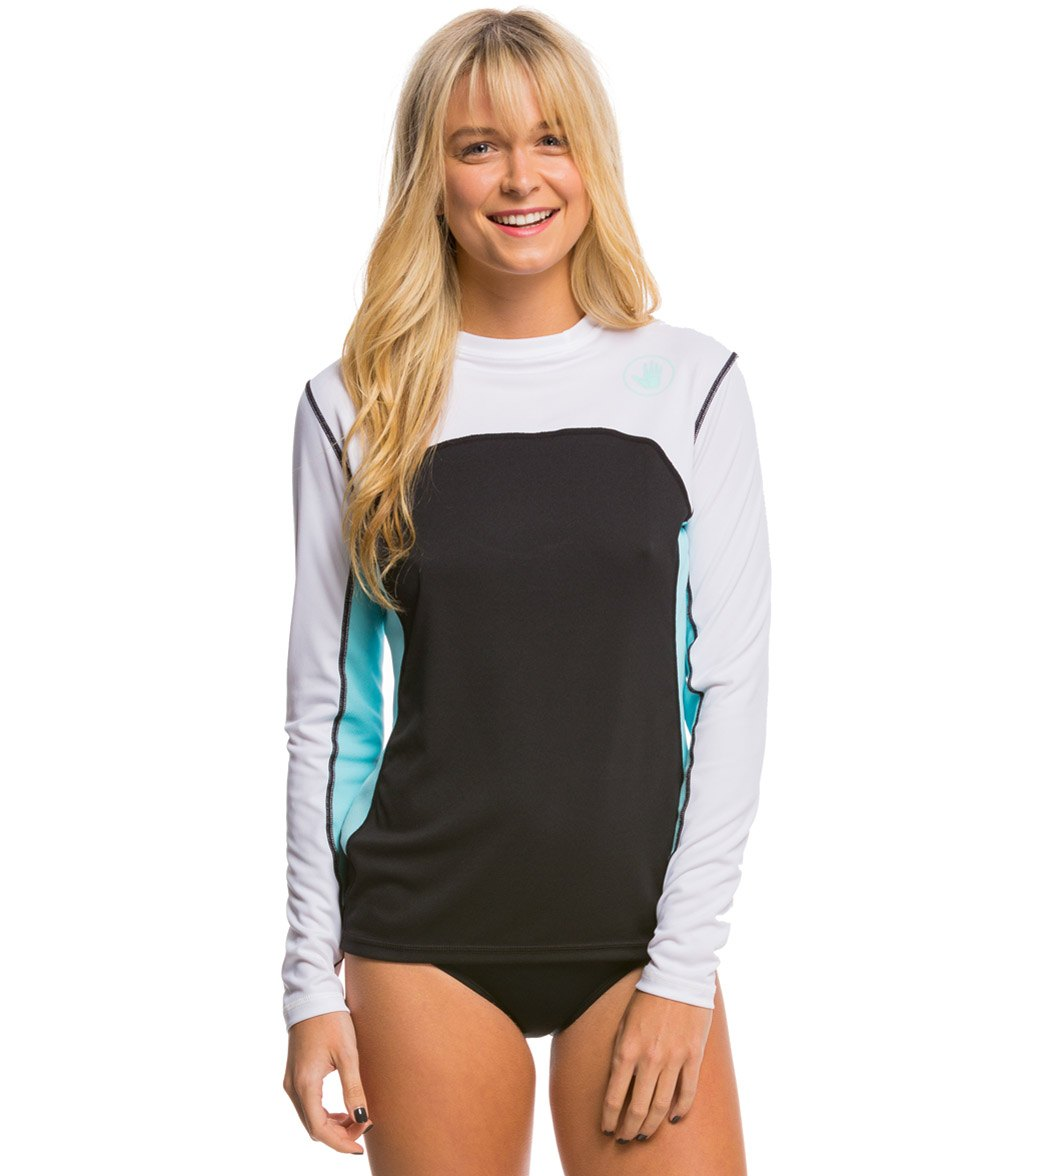 534b51e7 Body Glove Women's Performance Loose Fit Long Sleeve Surf Shirt at  SwimOutlet.com